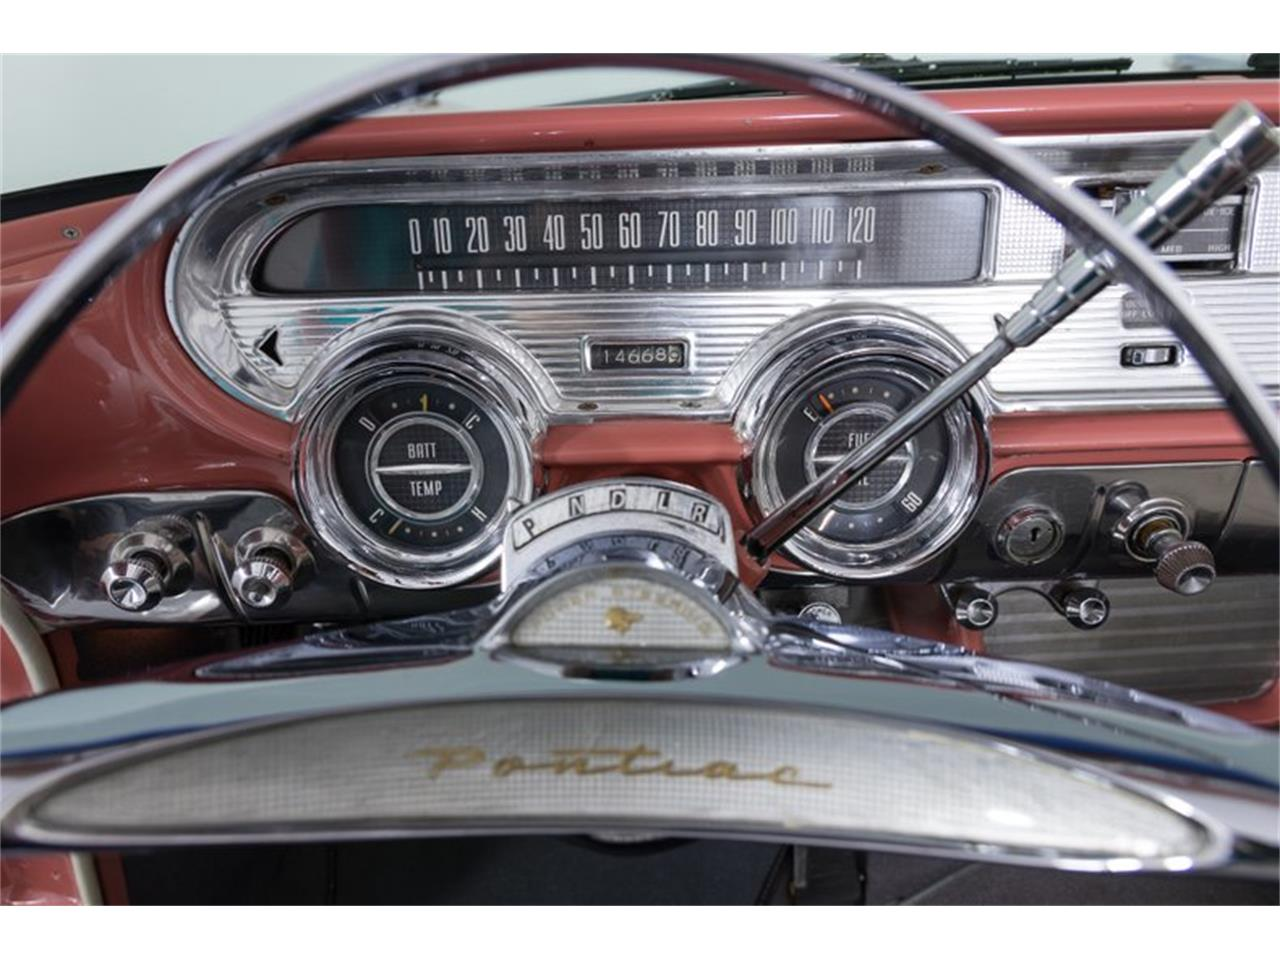 Large Picture of Classic 1957 Pontiac Star Chief located in Missouri - $54,995.00 Offered by Fast Lane Classic Cars Inc. - Q4QE